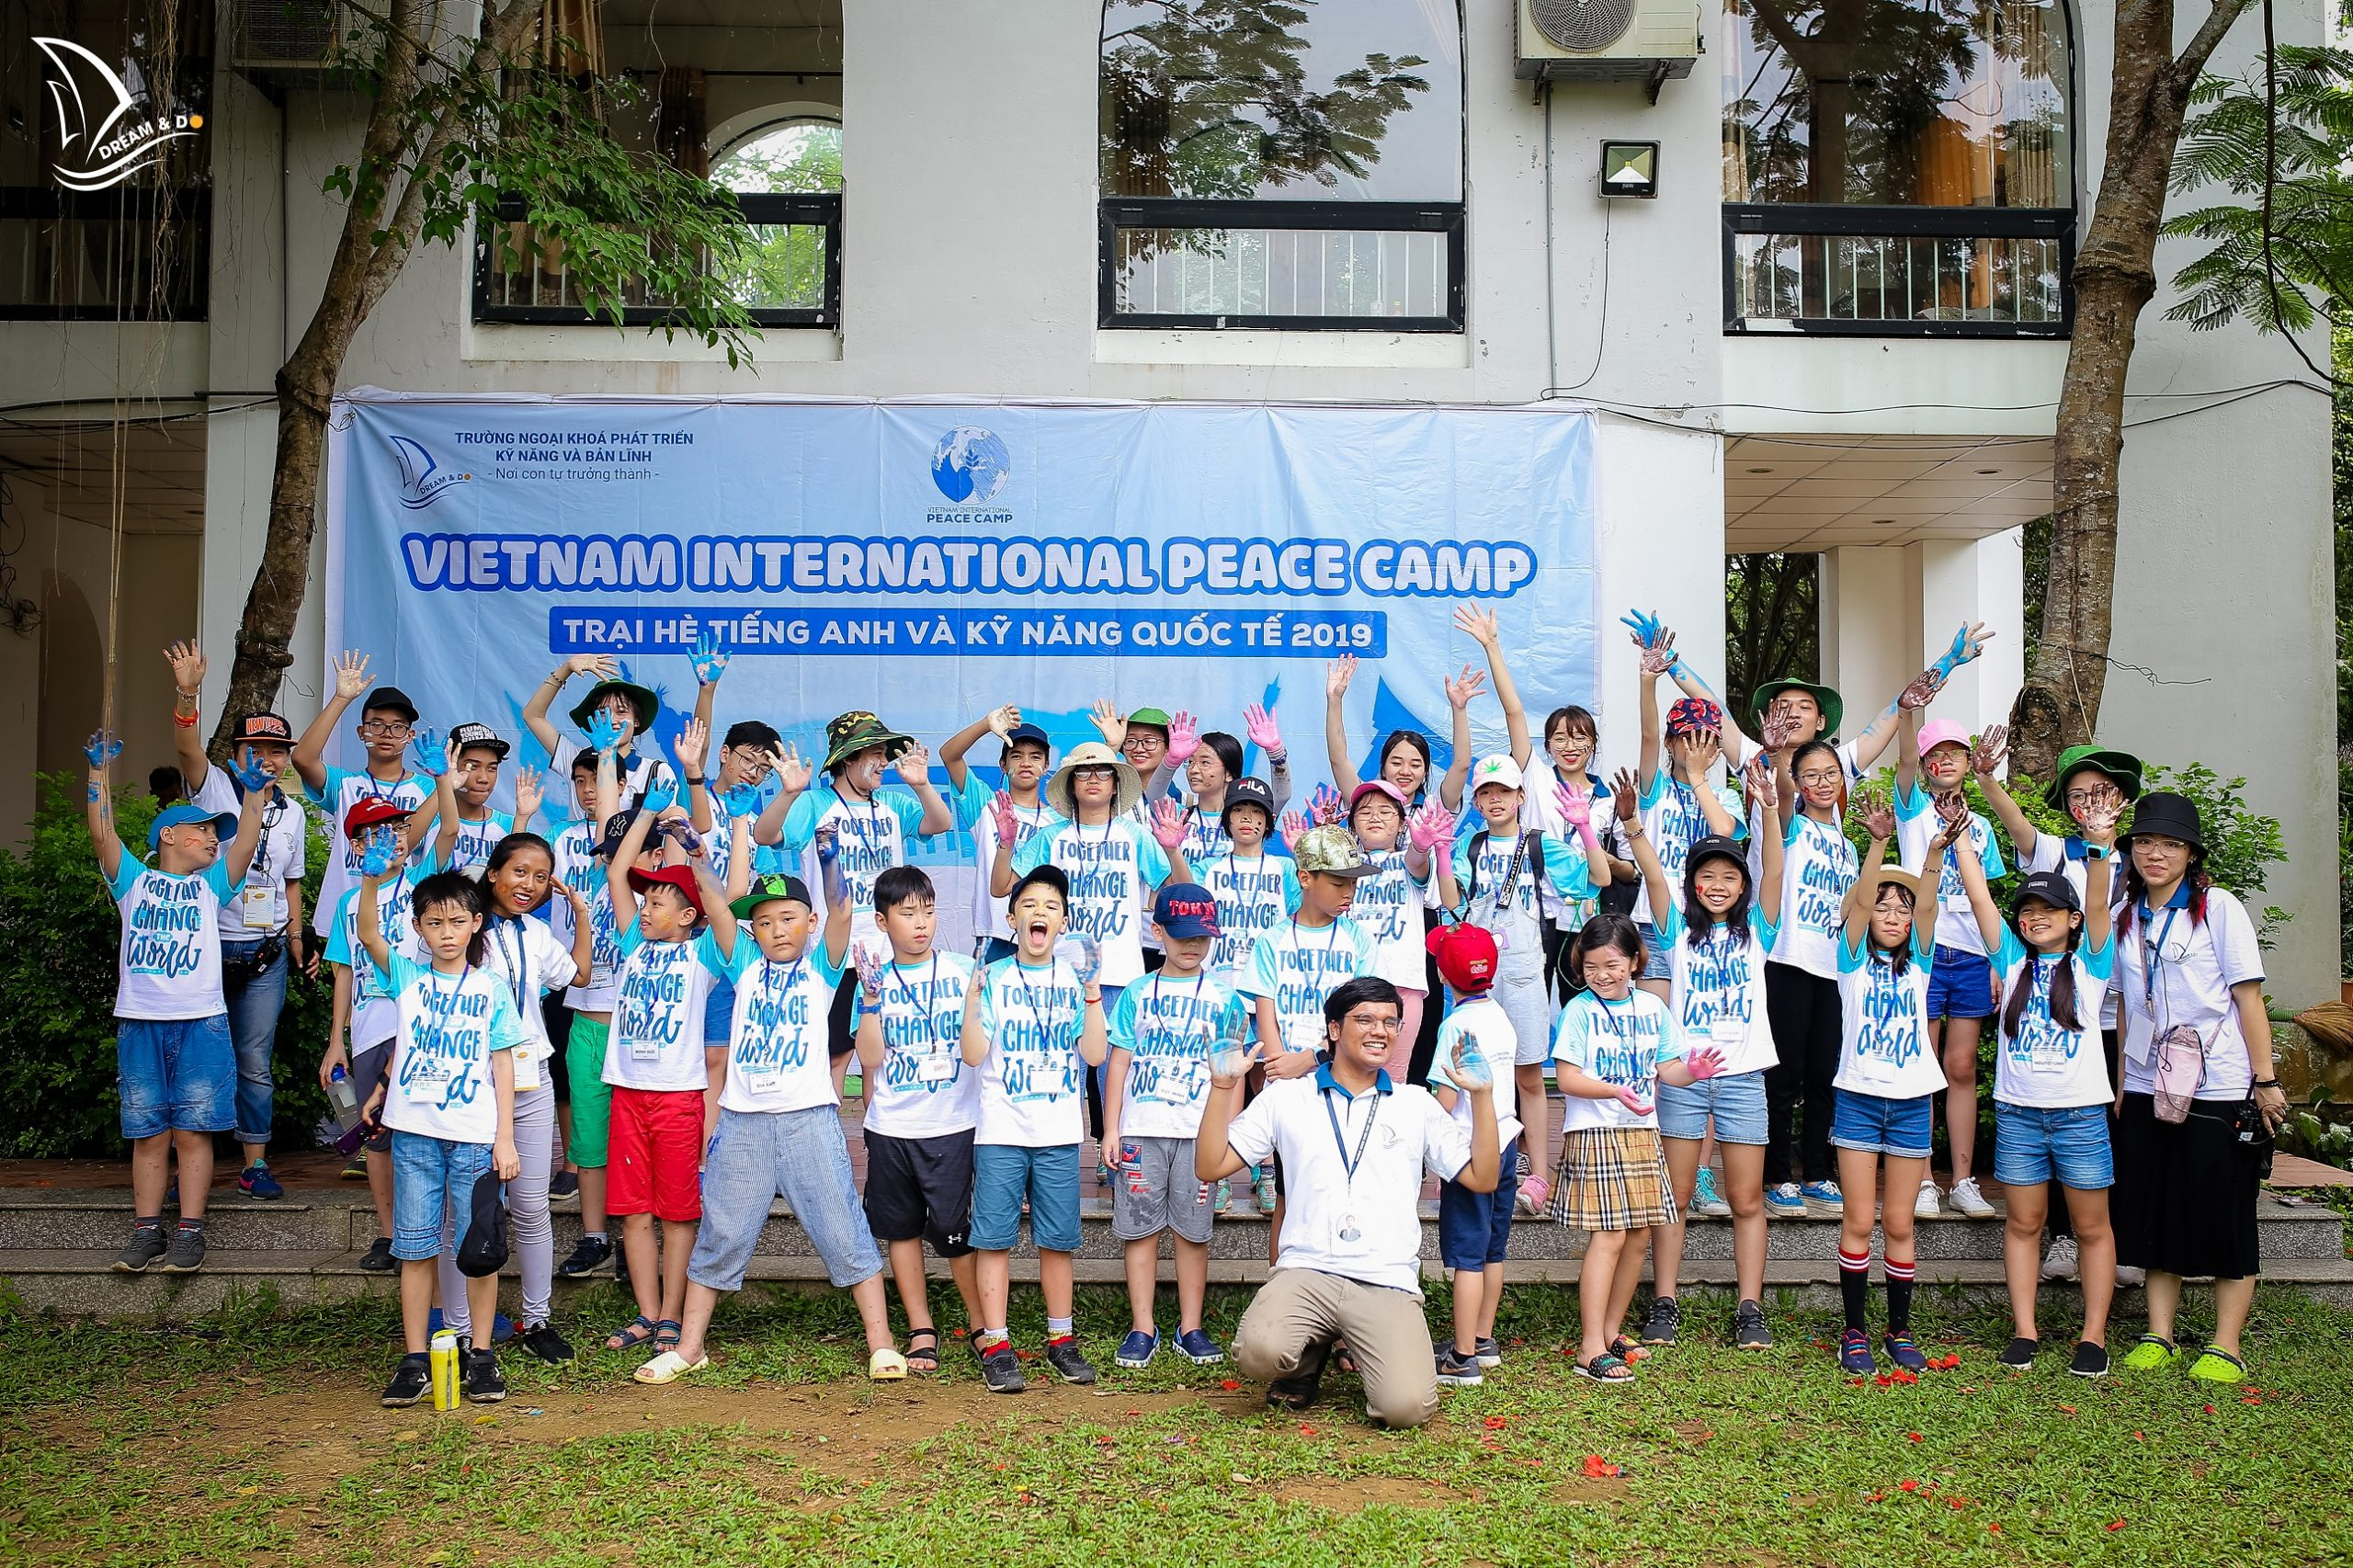 Vietnam International Peace Camp 2019 - Passport to Global Citizenship